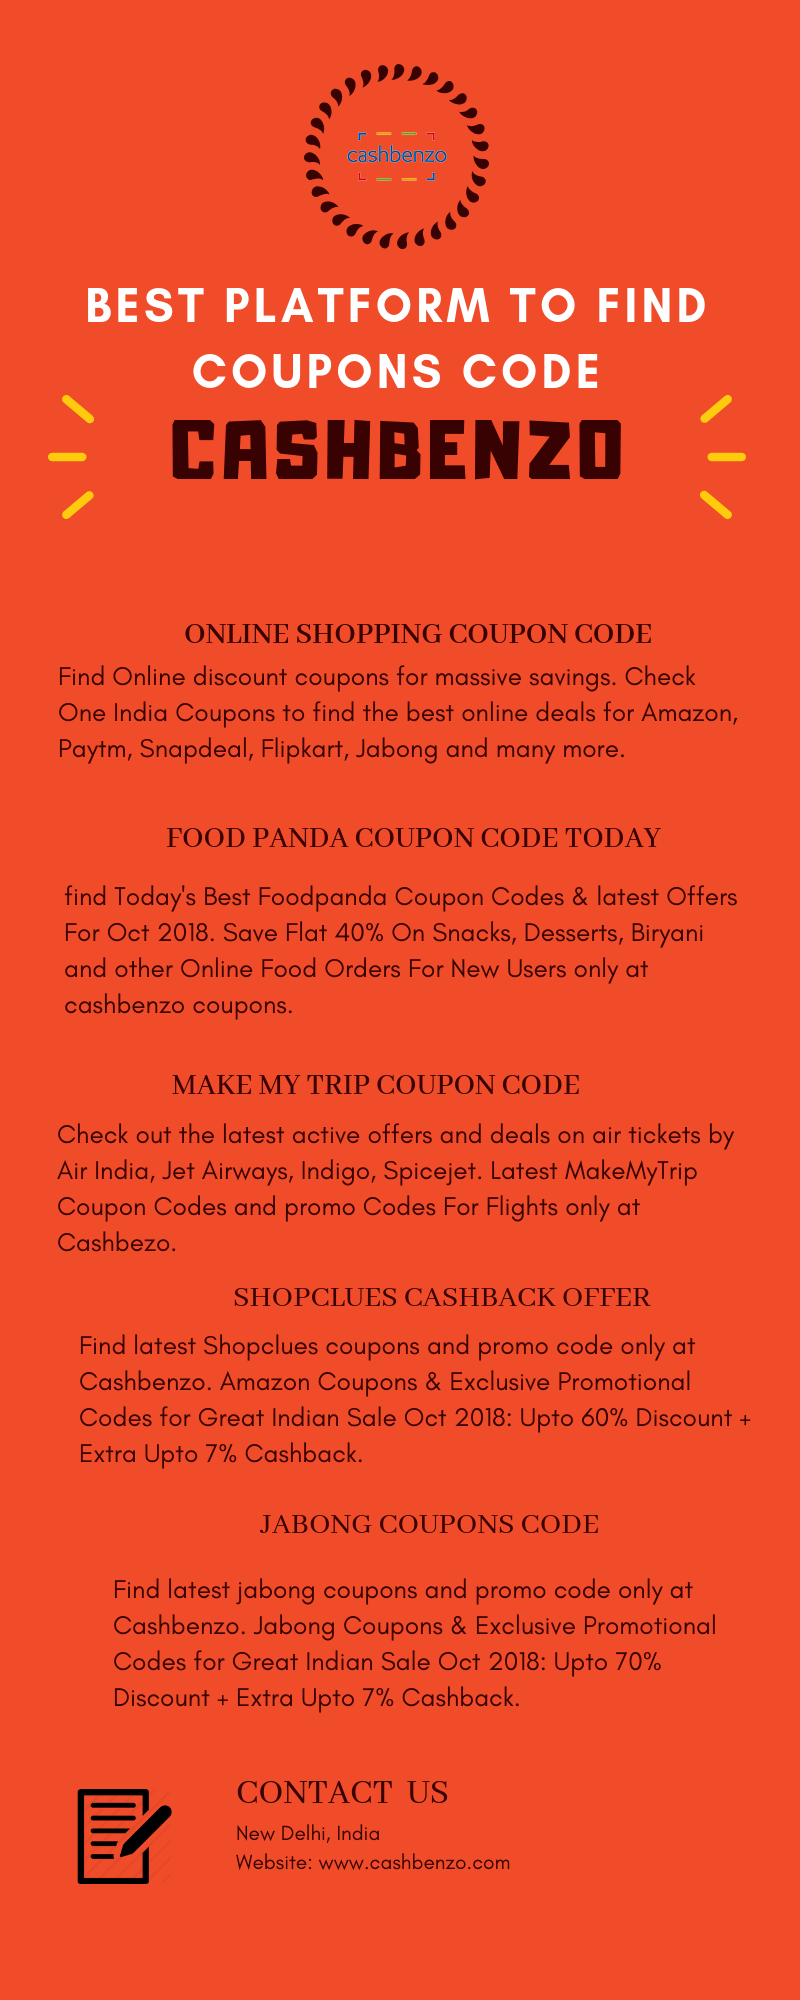 2579885dd Find Online discount coupons for massive savings. Check One India Coupons  to find the best online deals for Amazon